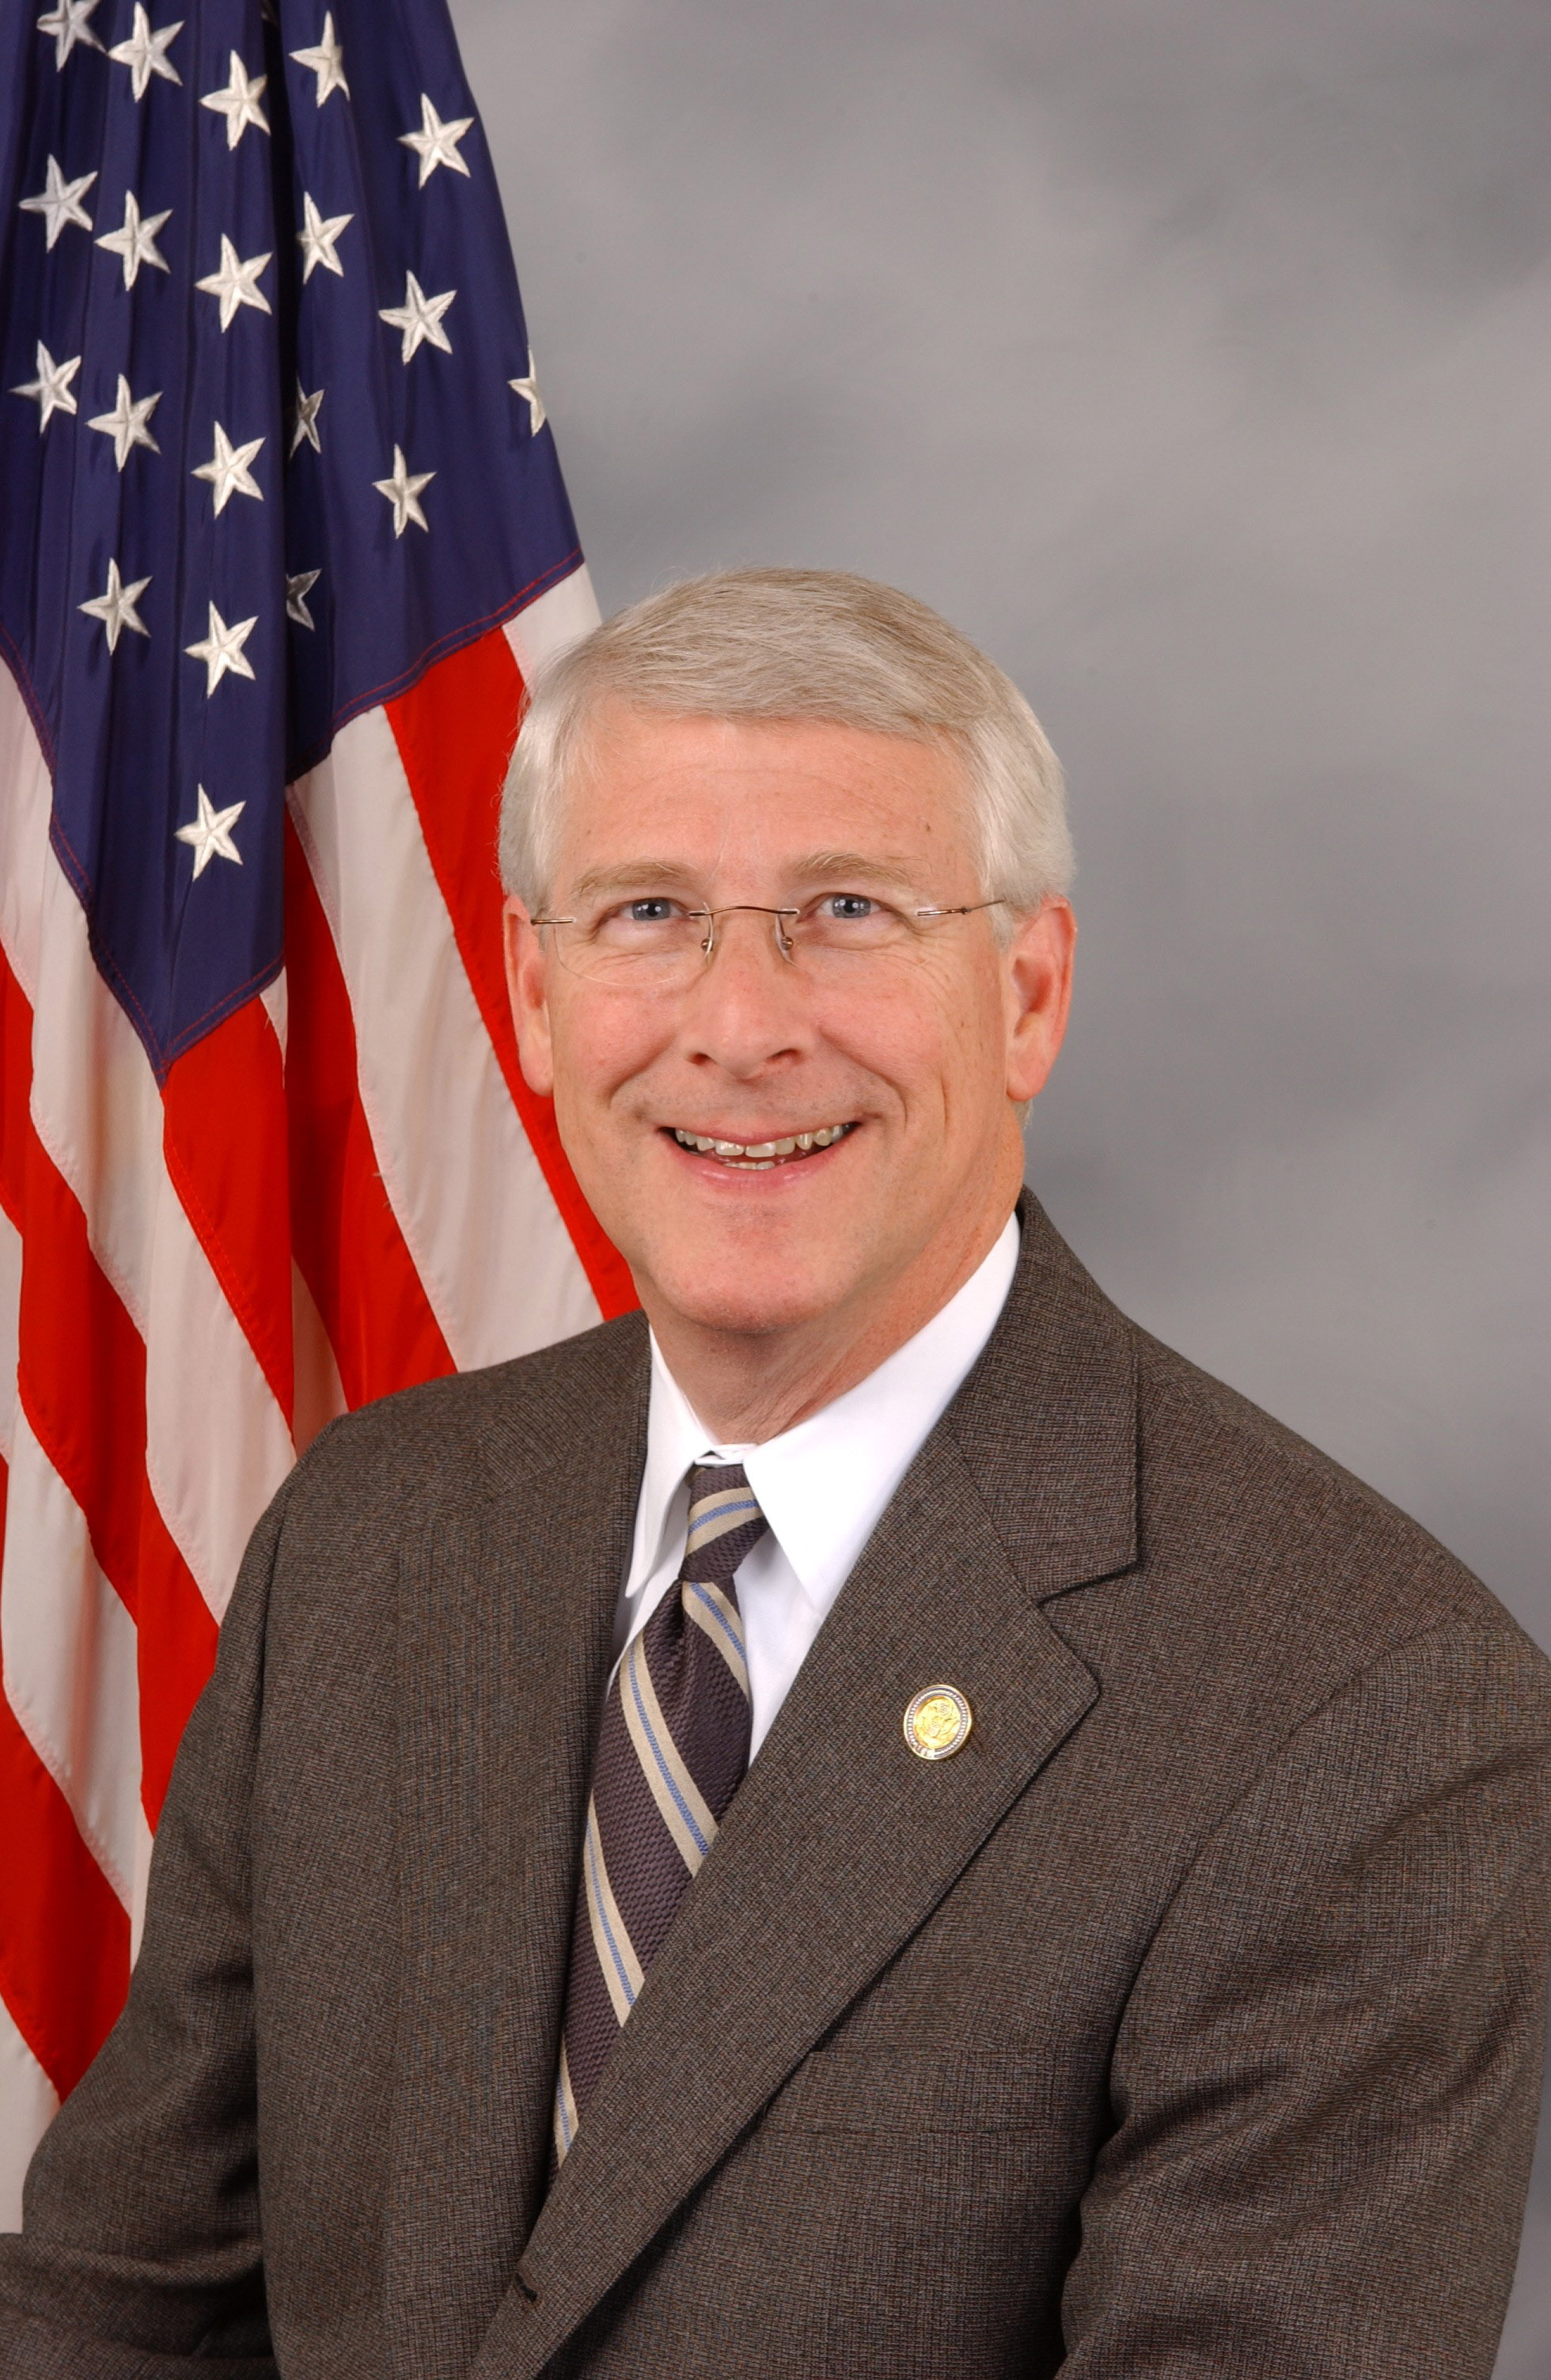 Roger Wicker's quote #5